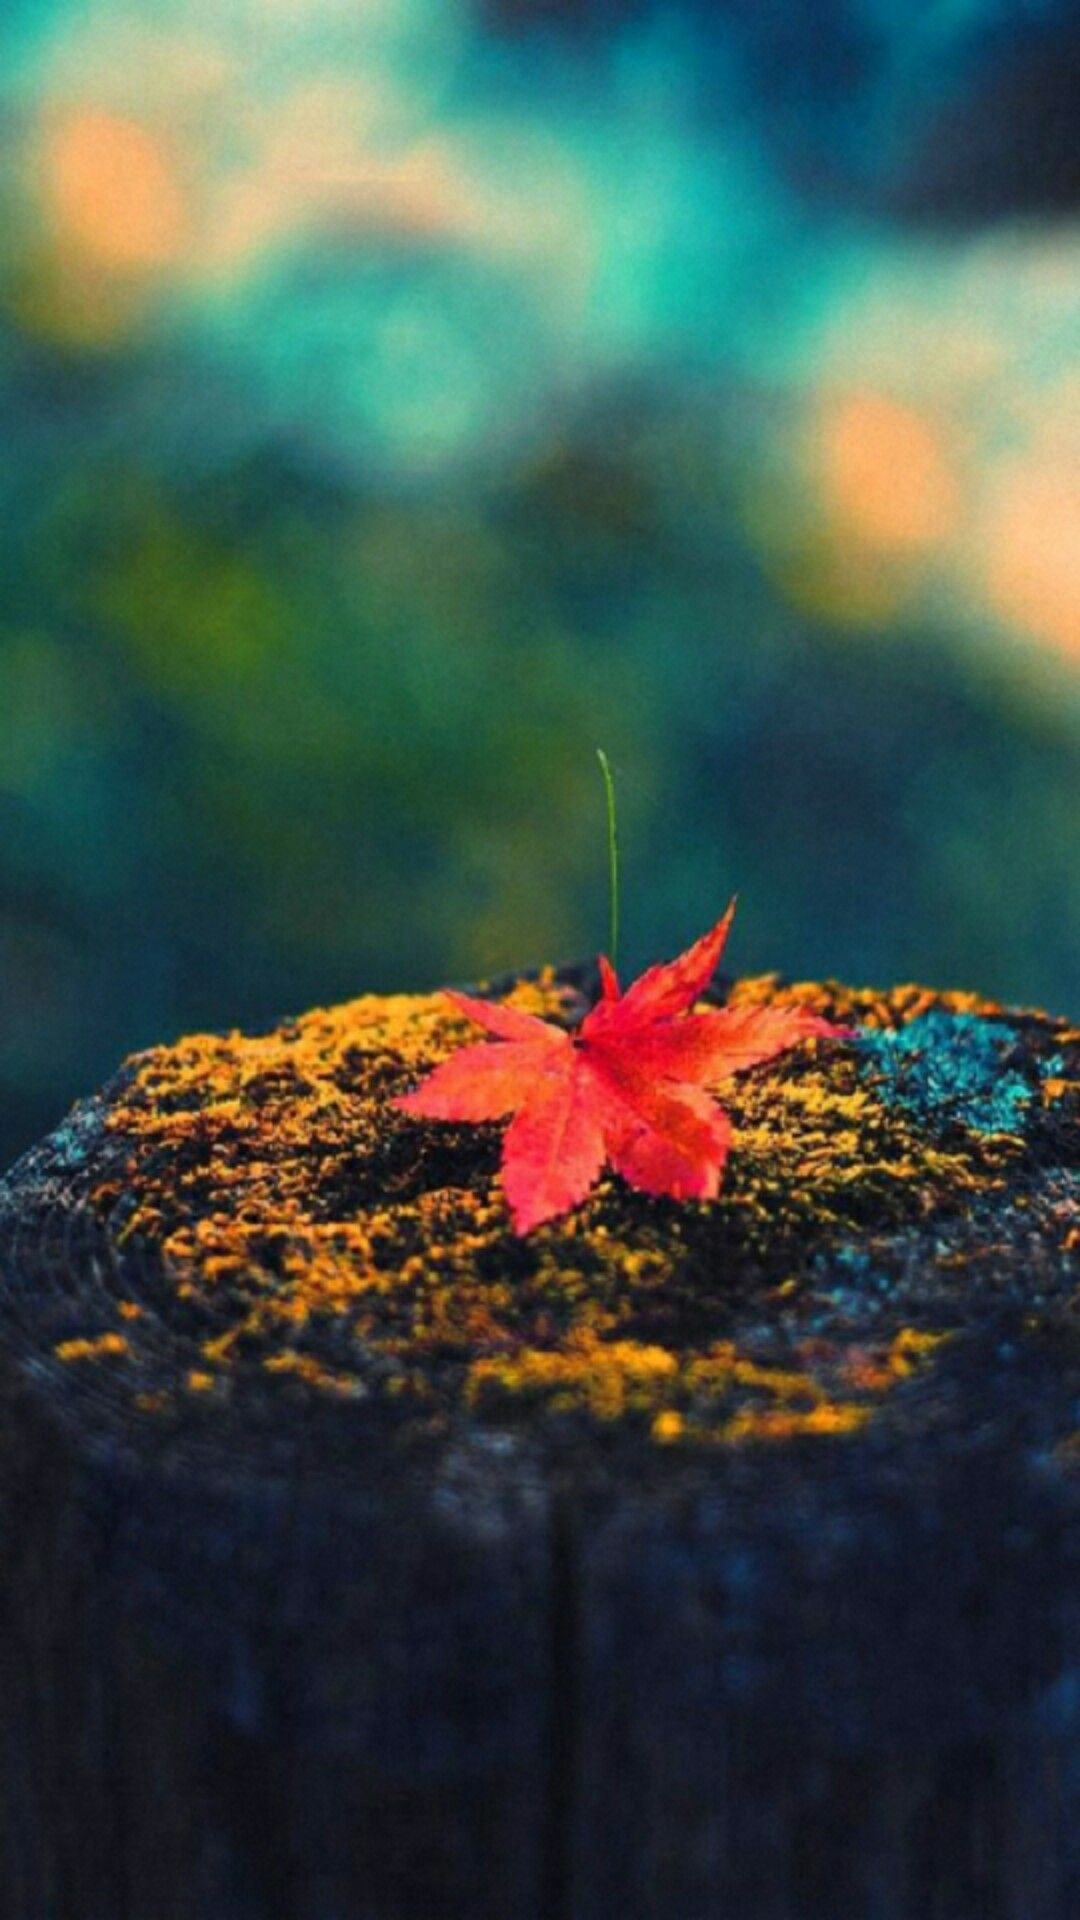 Maple leaf cellphone wallpaper lock screen, Fall, Autumn